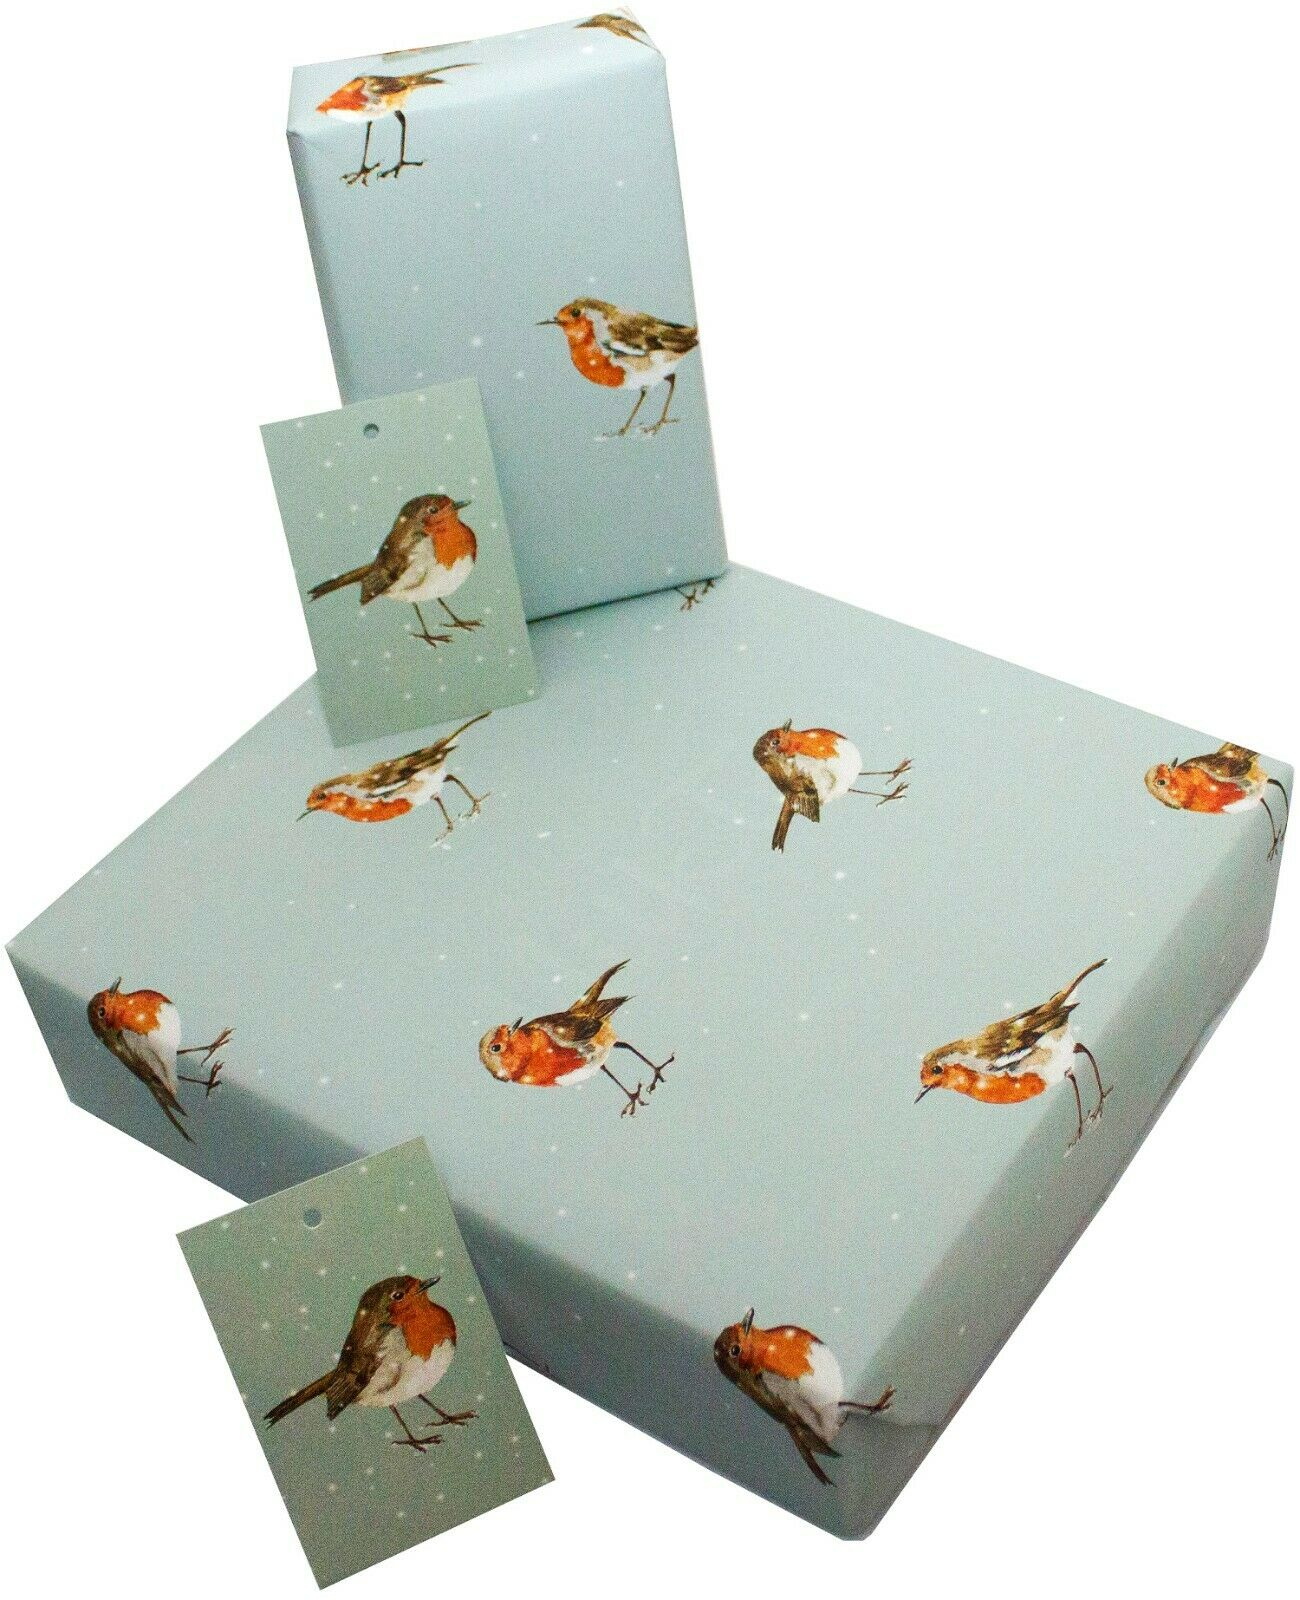 2 TAGS ANY OCCASION 1STP/&P EDEN FLORAL  2 SHEETS OF GIFT WRAP WRAPPING PAPER